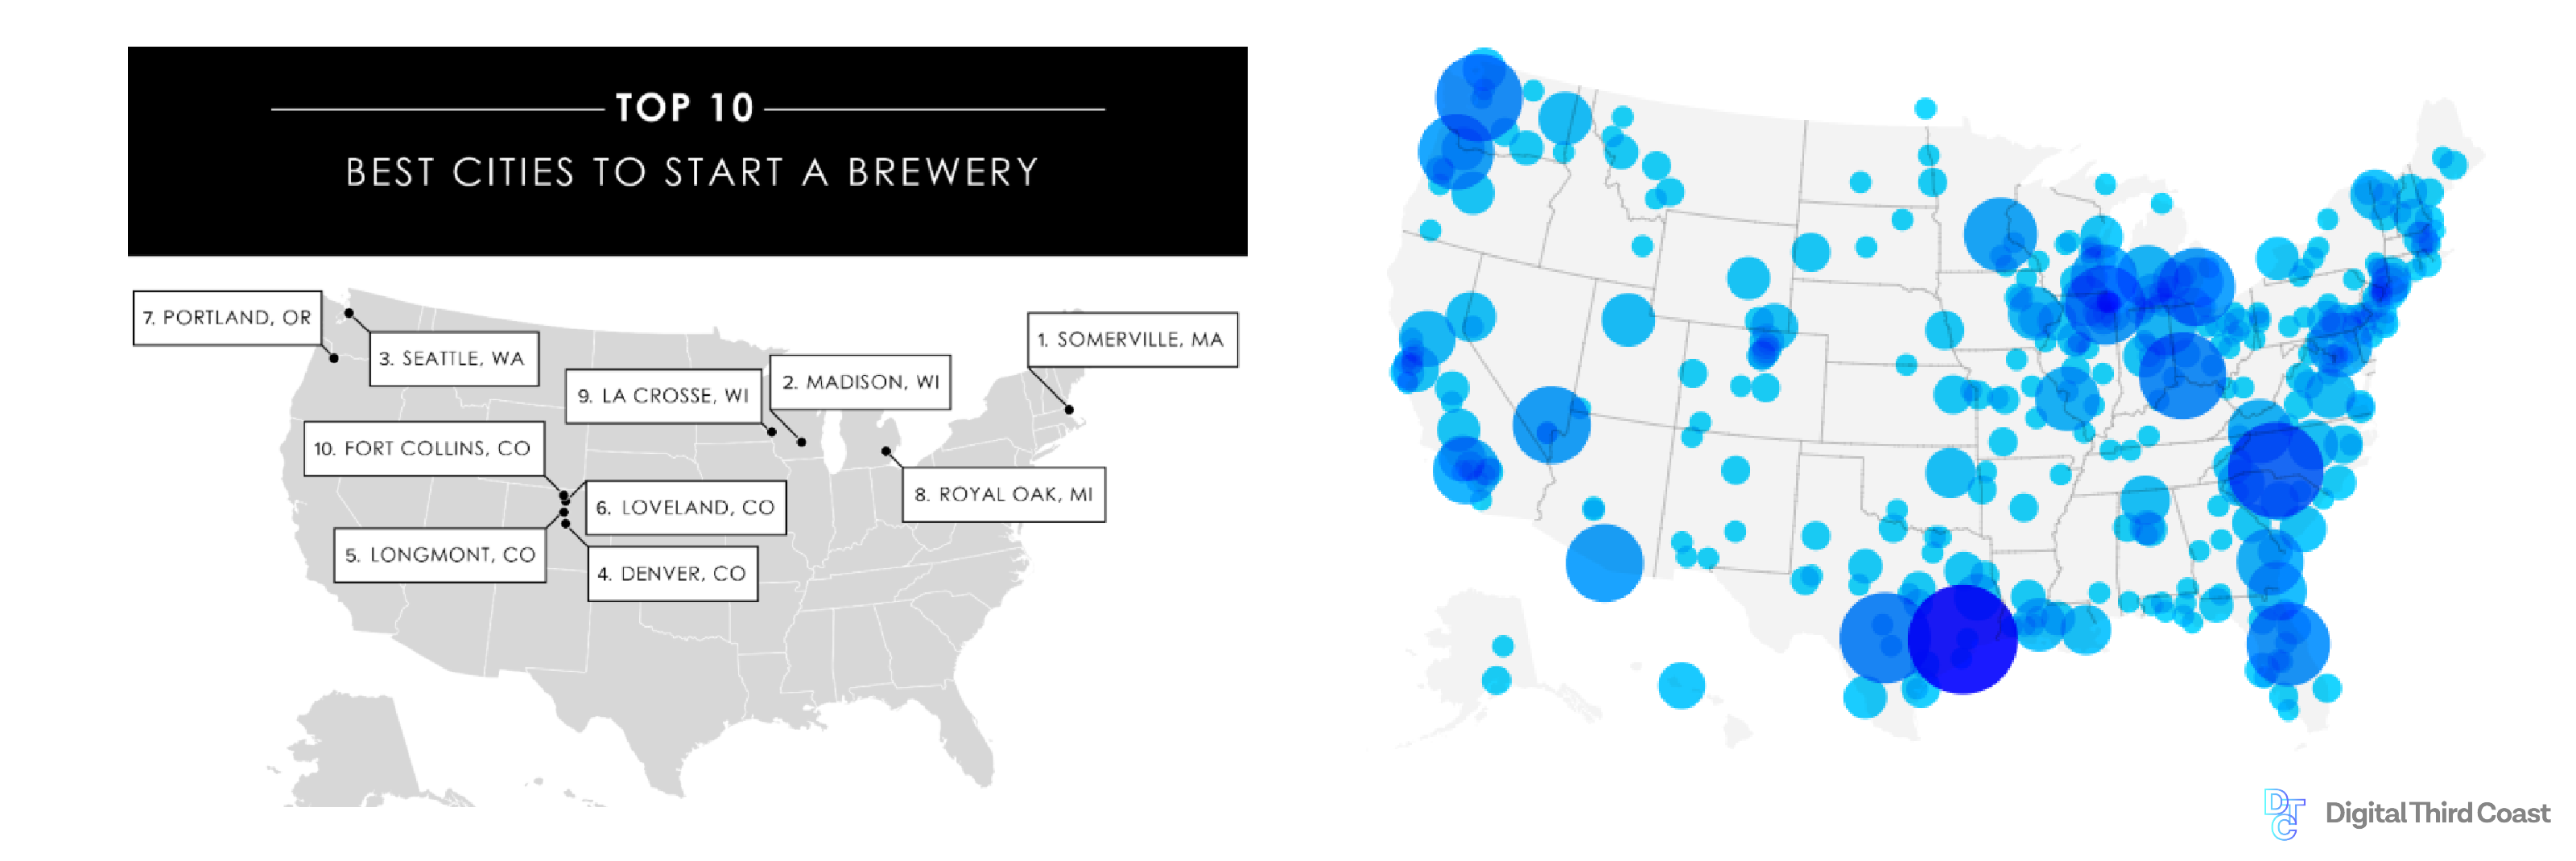 Map of United States illustrating best cities to start a brewery